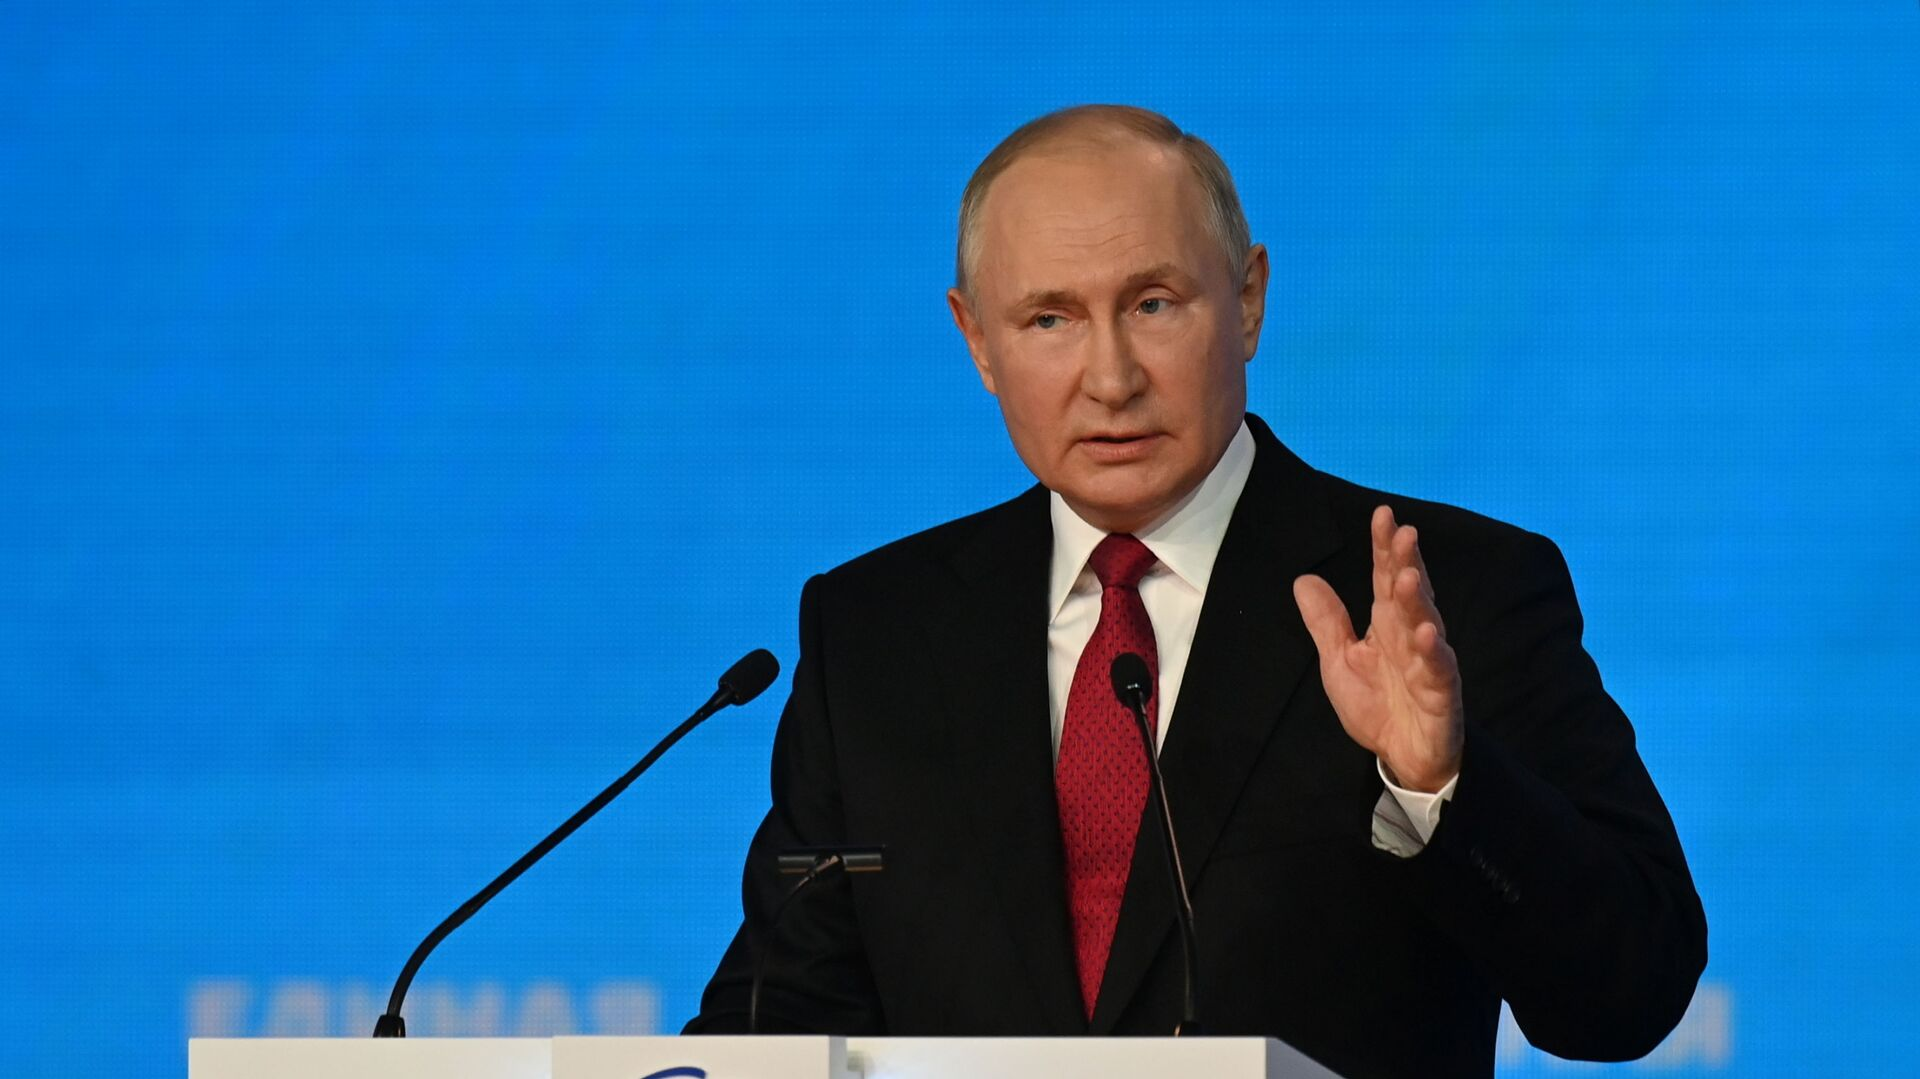 Russian President Vladimir Putin delivers a speech at a congress of the ruling United Russia party in Moscow, Russia August 24, 2021 - Sputnik International, 1920, 01.09.2021